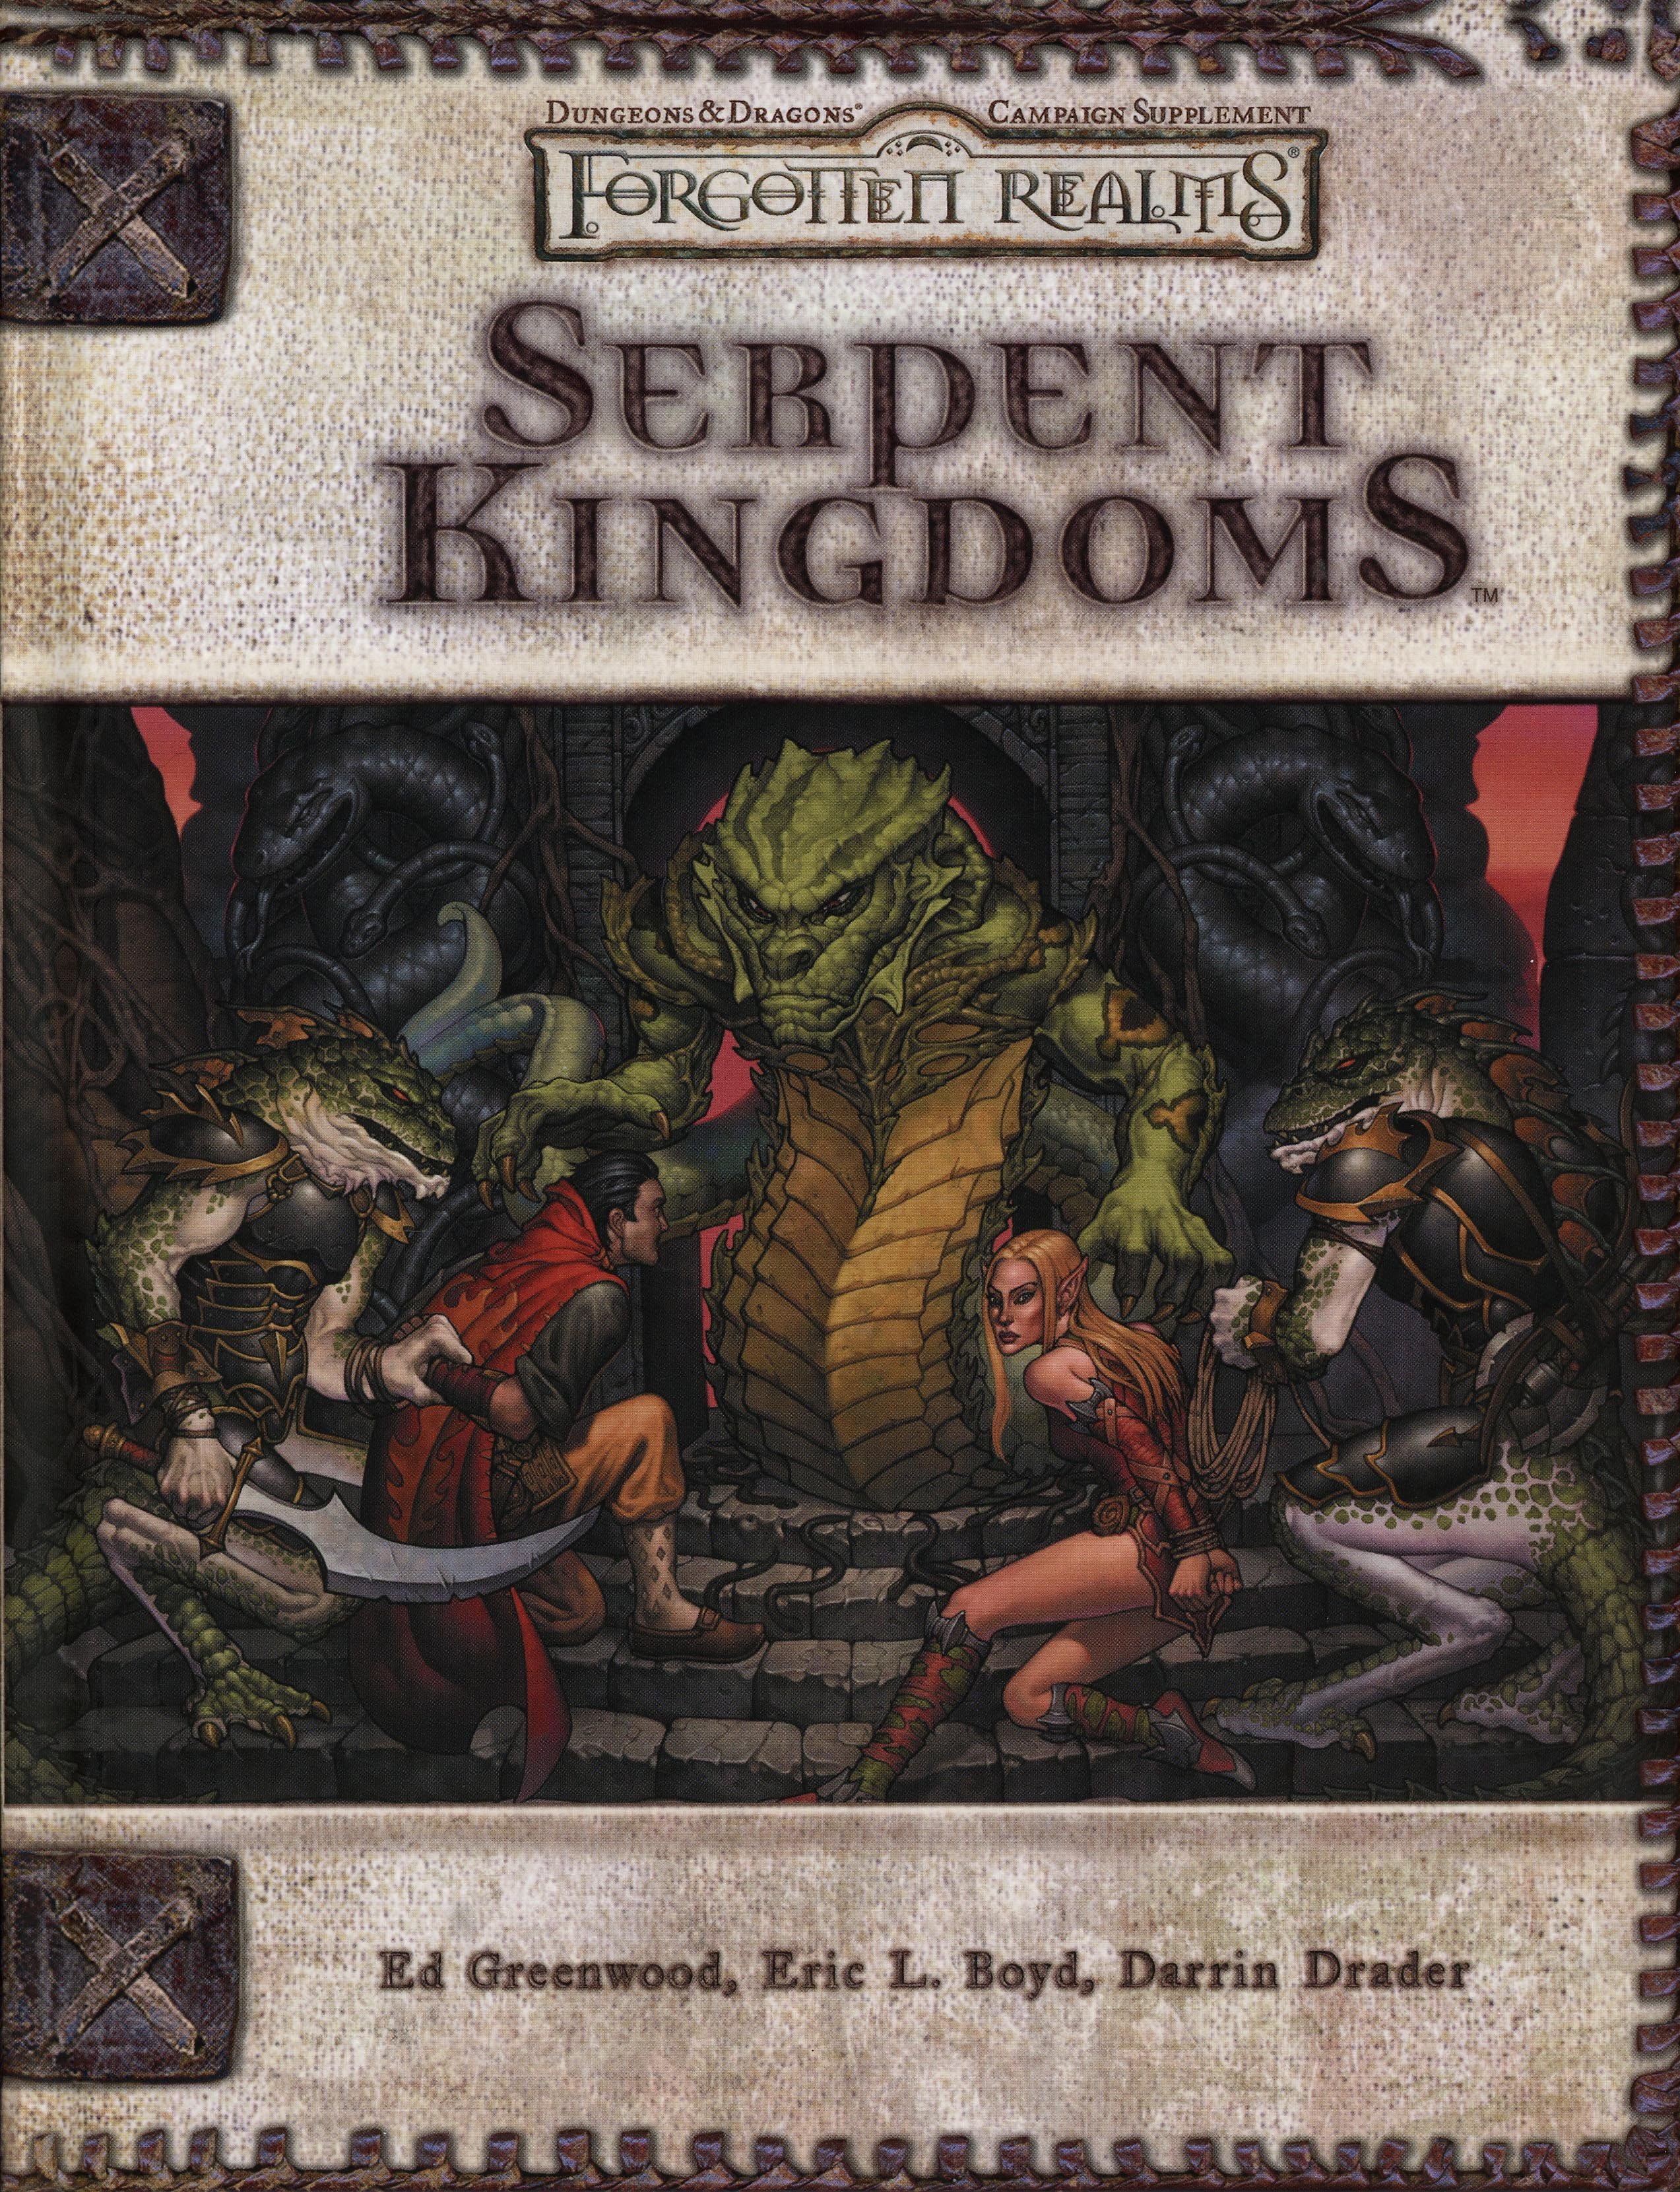 File:Serpentkingdoms.jpg